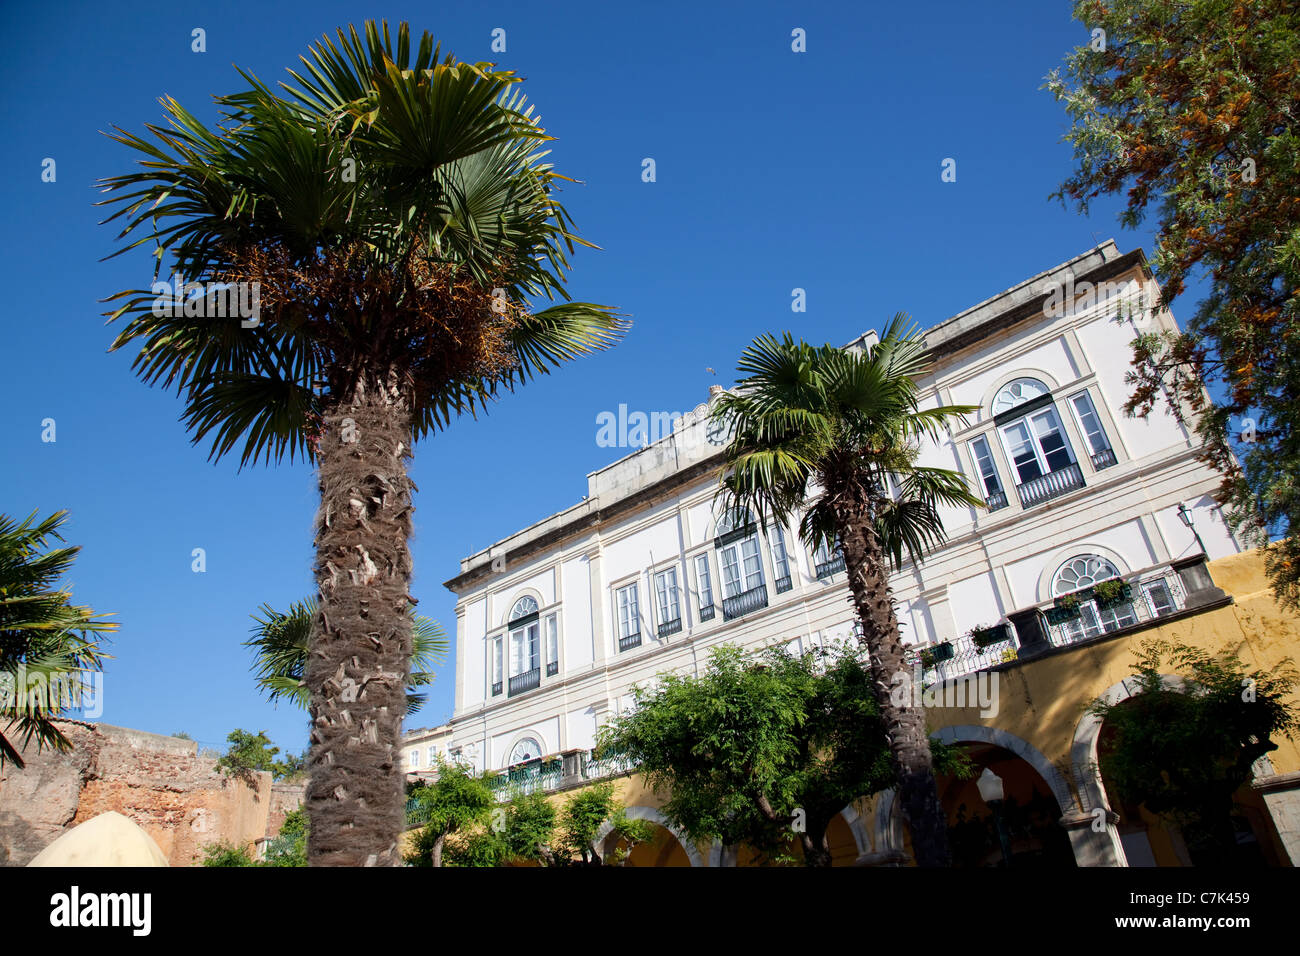 Portugal, Algarve, Silves, Town Hall Garden Stock Photo